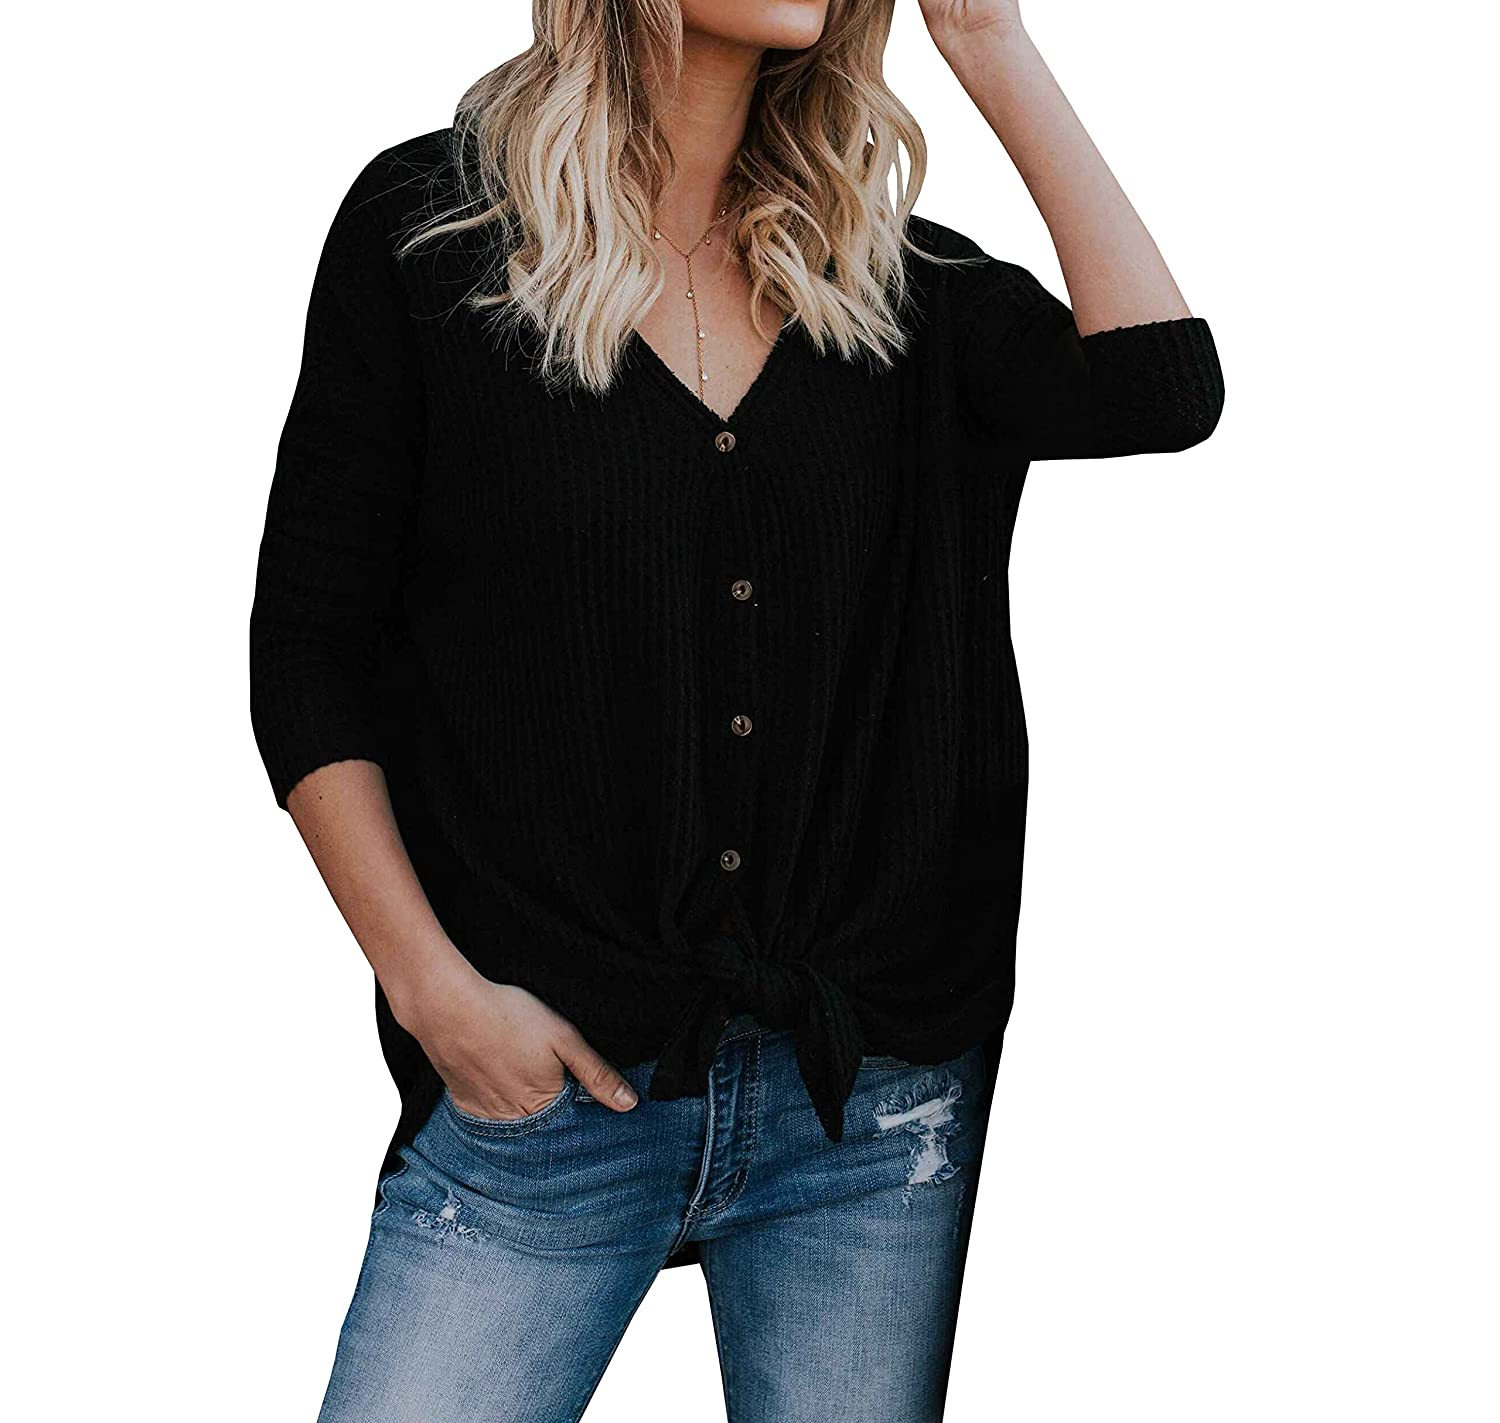 58f3b902a FISACE Womens Henley Shirts V Neck Button Down Solid Long Sleeve Loose  Casual Knit Sweaters Tops Blouse at Amazon Women s Clothing store